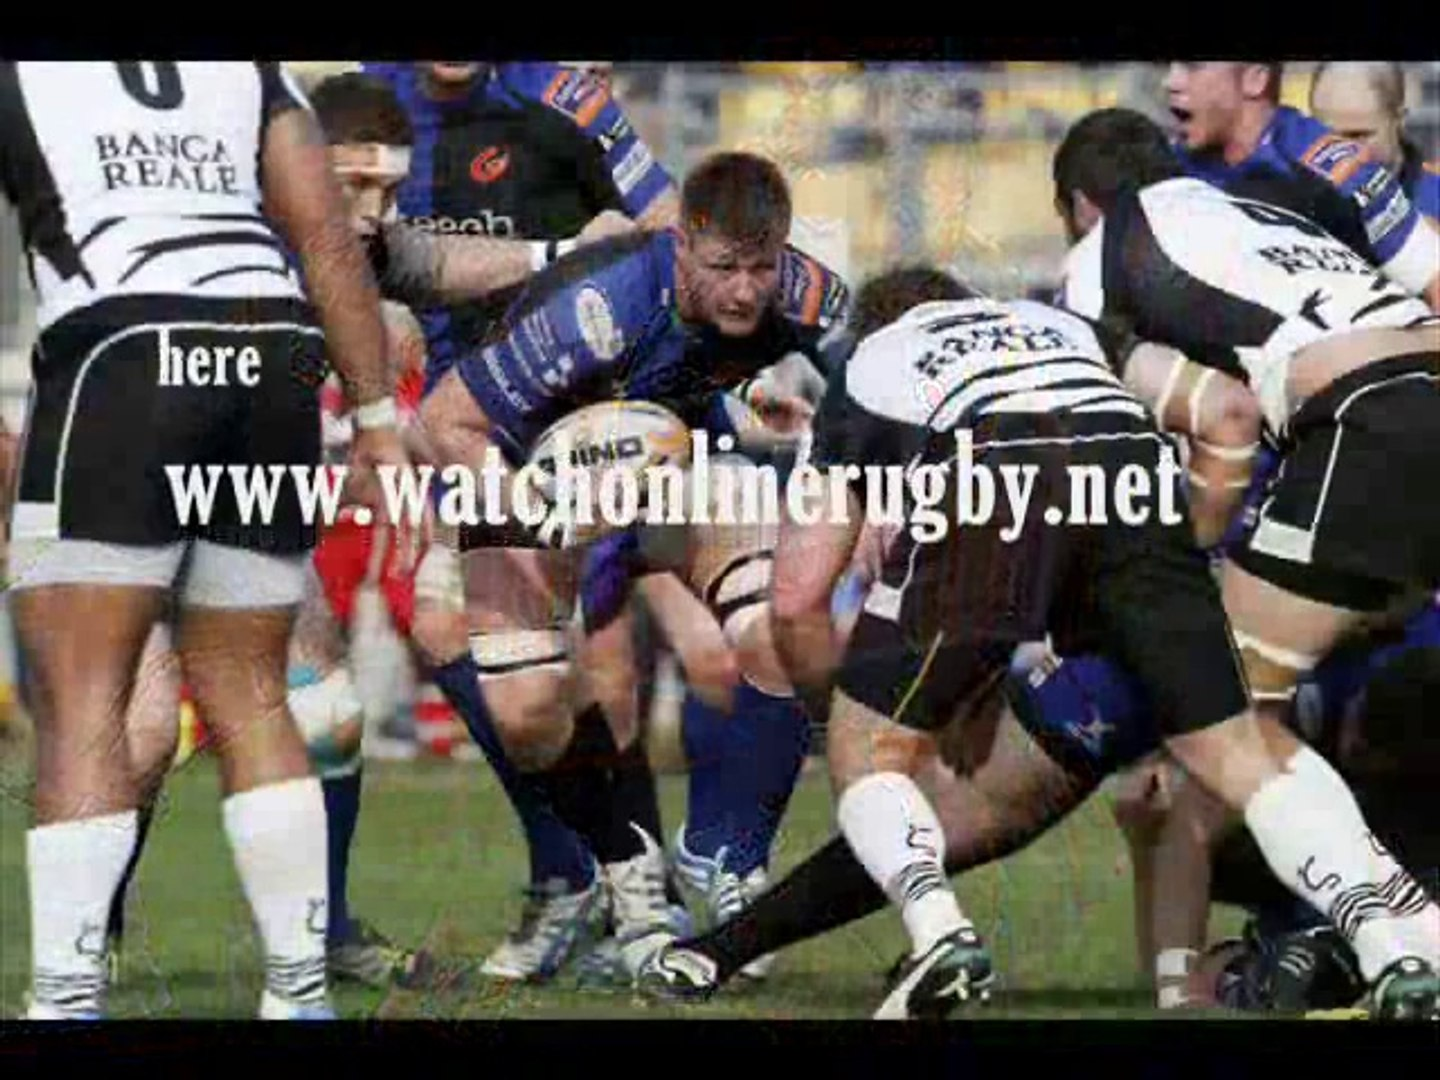 Live Rugby,Ulster vs Zebre Online,live rugby Ulster vs Zebre,watch Ulster vs Zebre online,watch Ulst